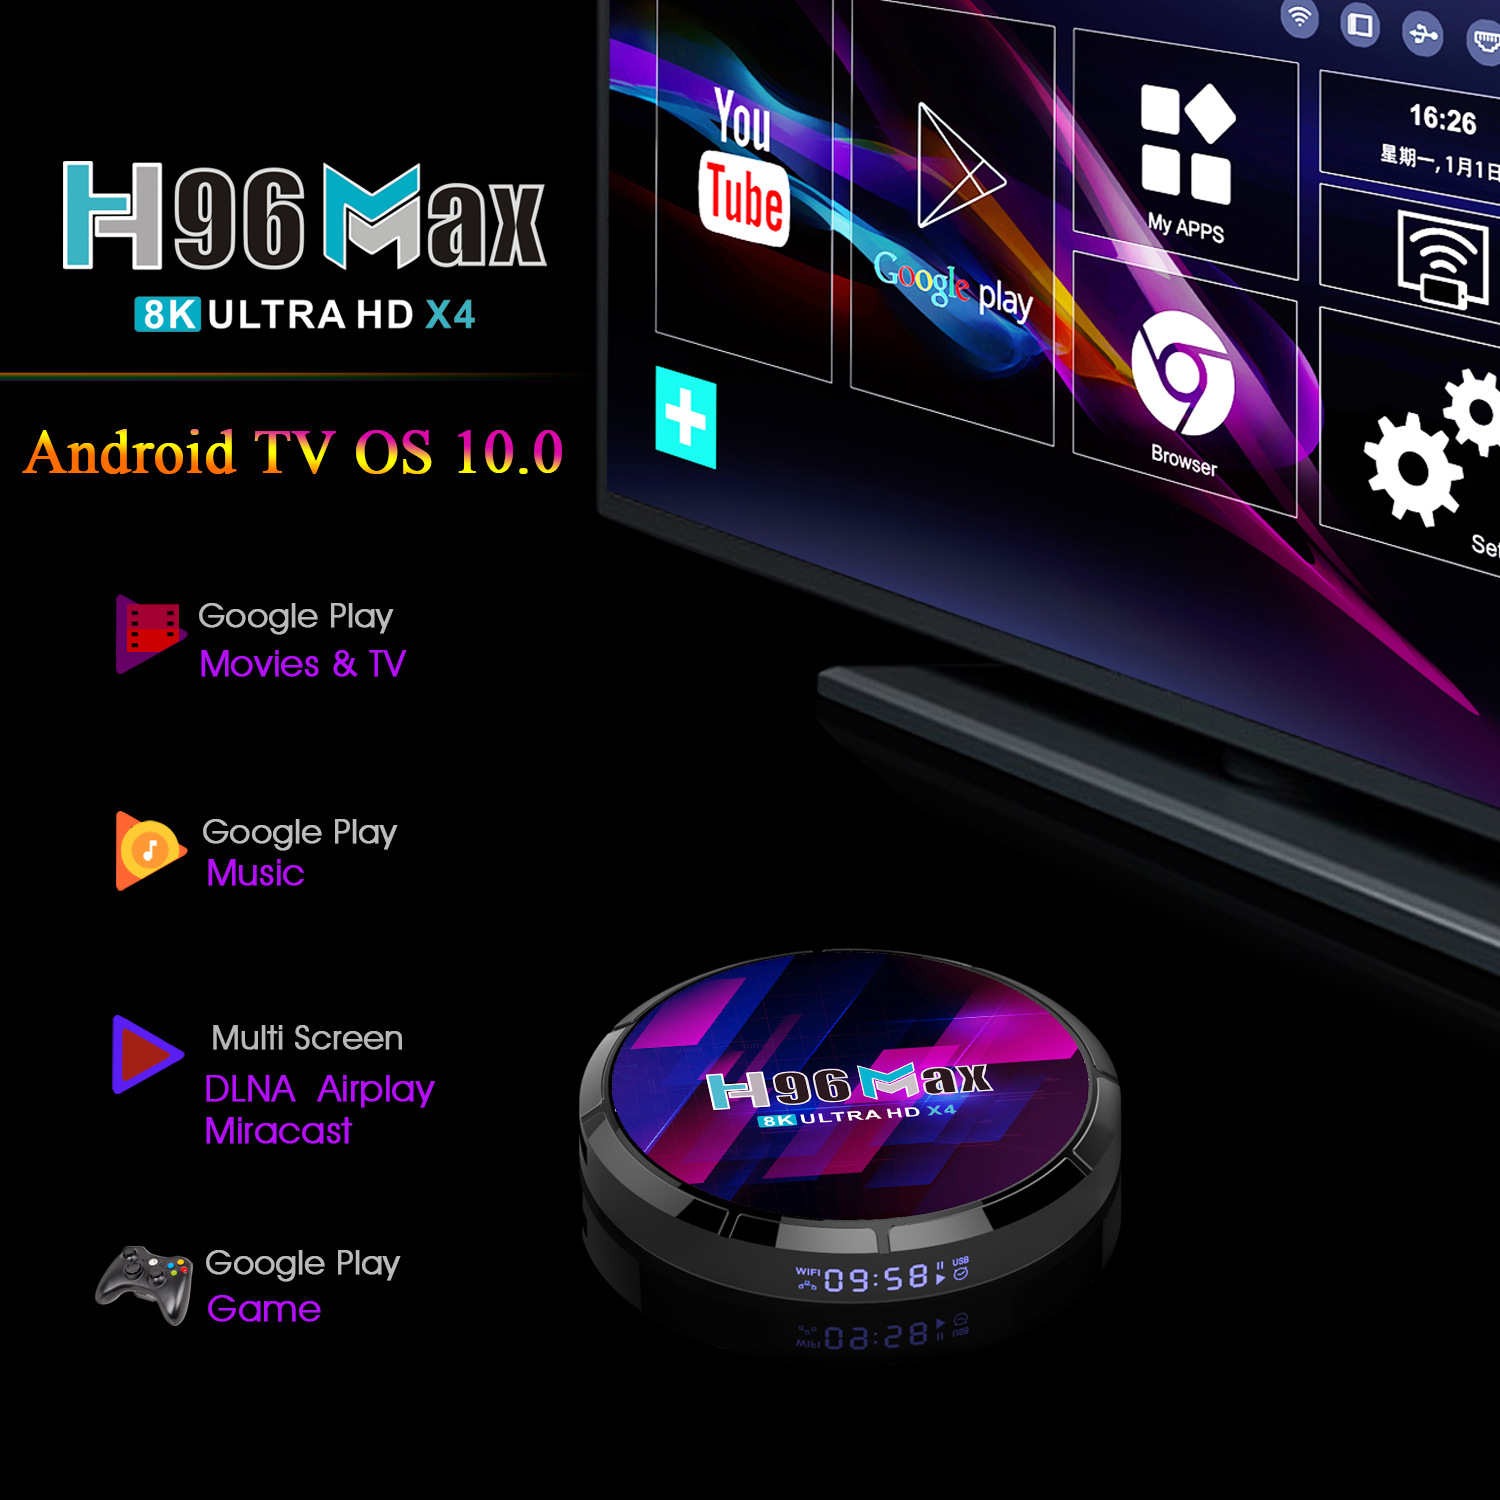 2021 New H96 Max S905X4 Tv Box Android 10.0 4G+64G 8K Network Player 2